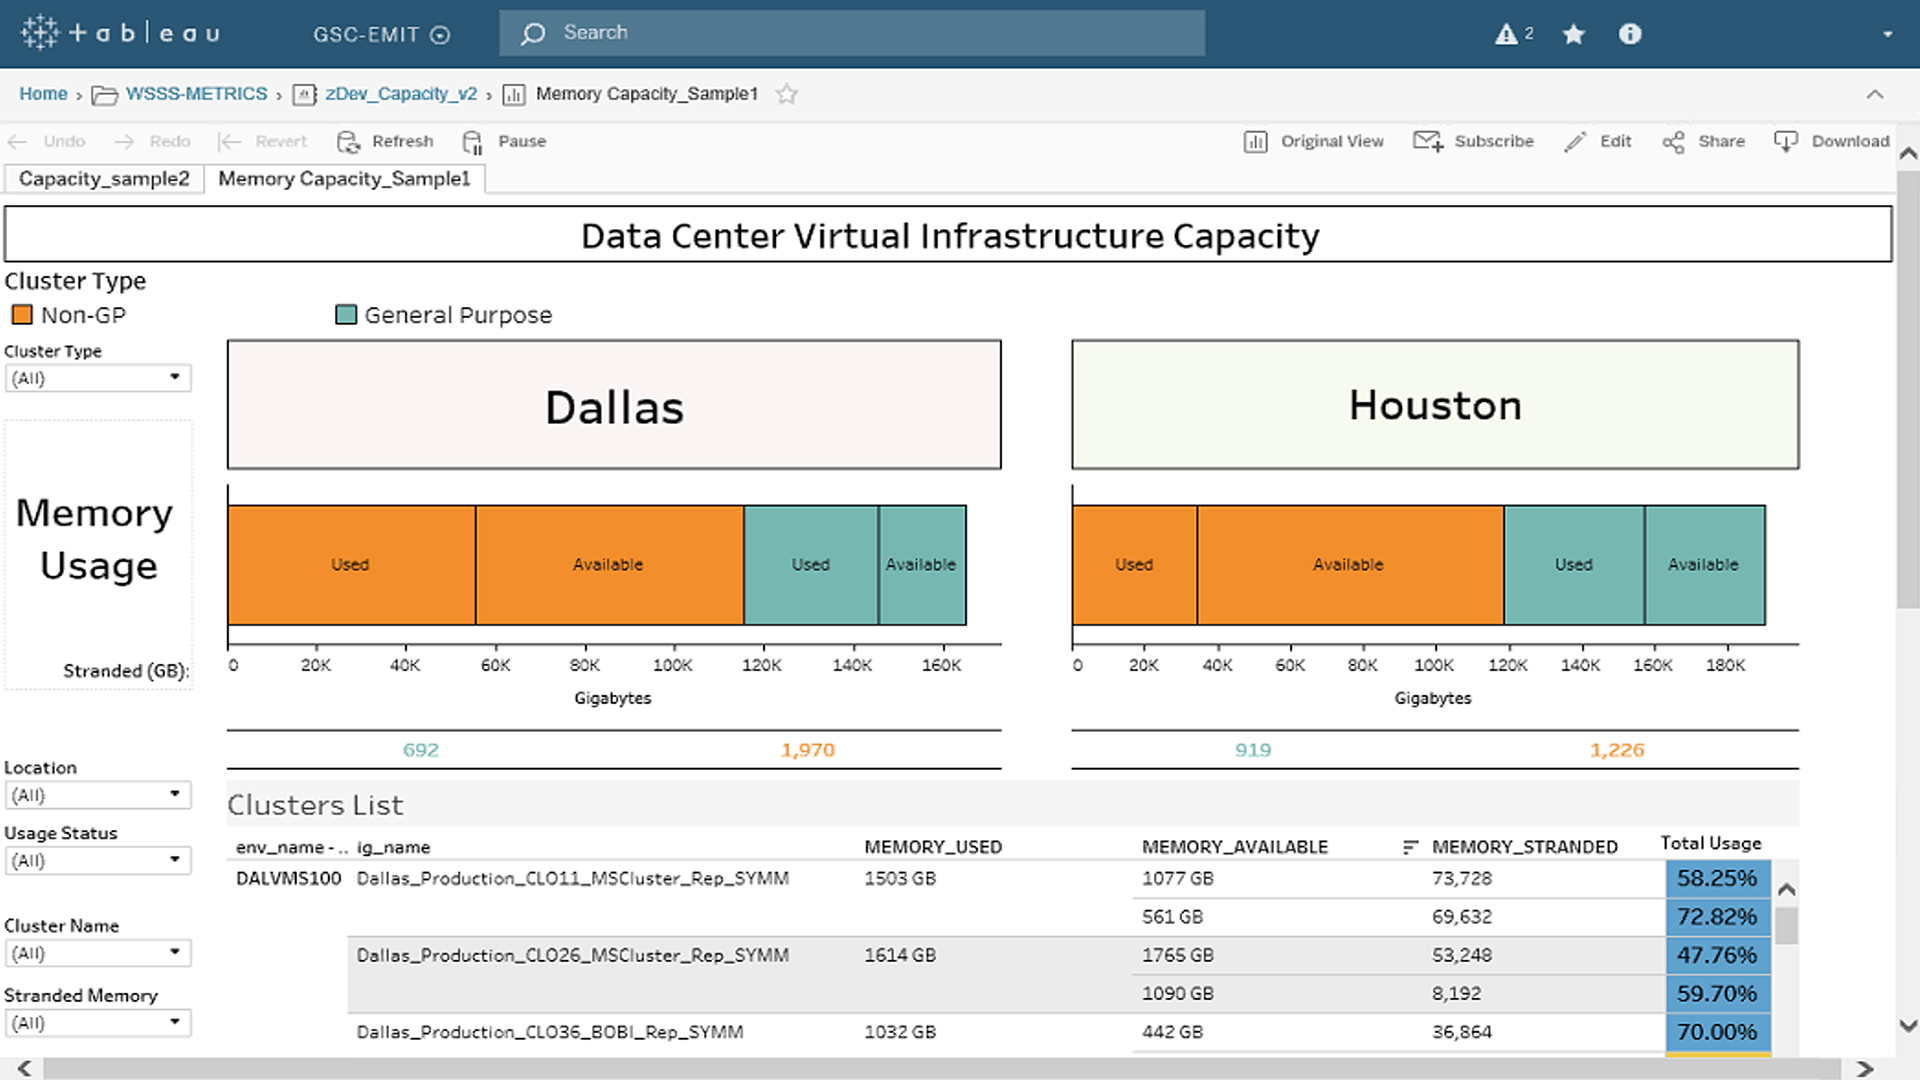 Densify data in Tableau